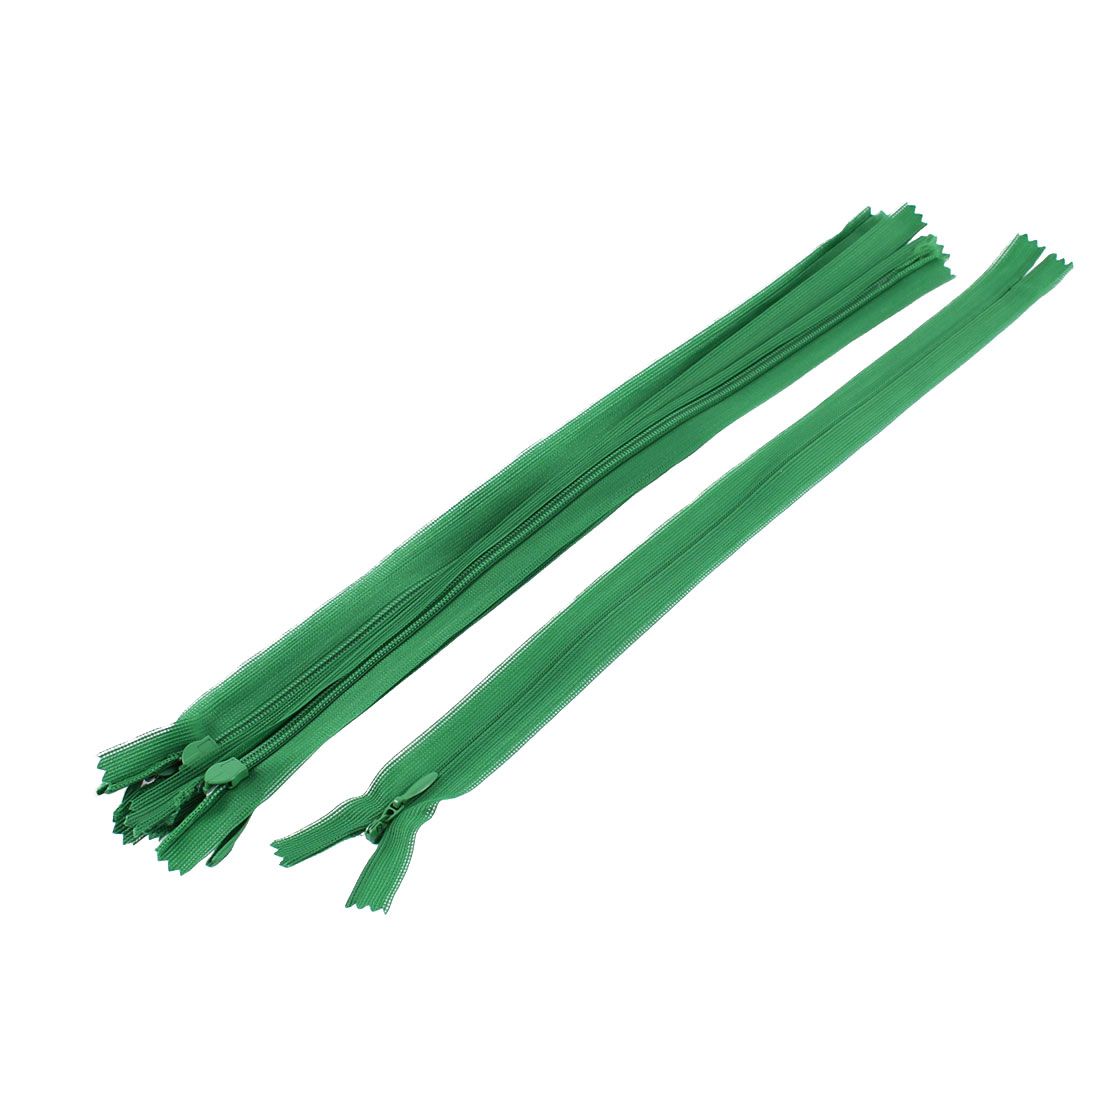 5 Pcs 12-inch Long Green Nylon Zippers Zips for Clothes